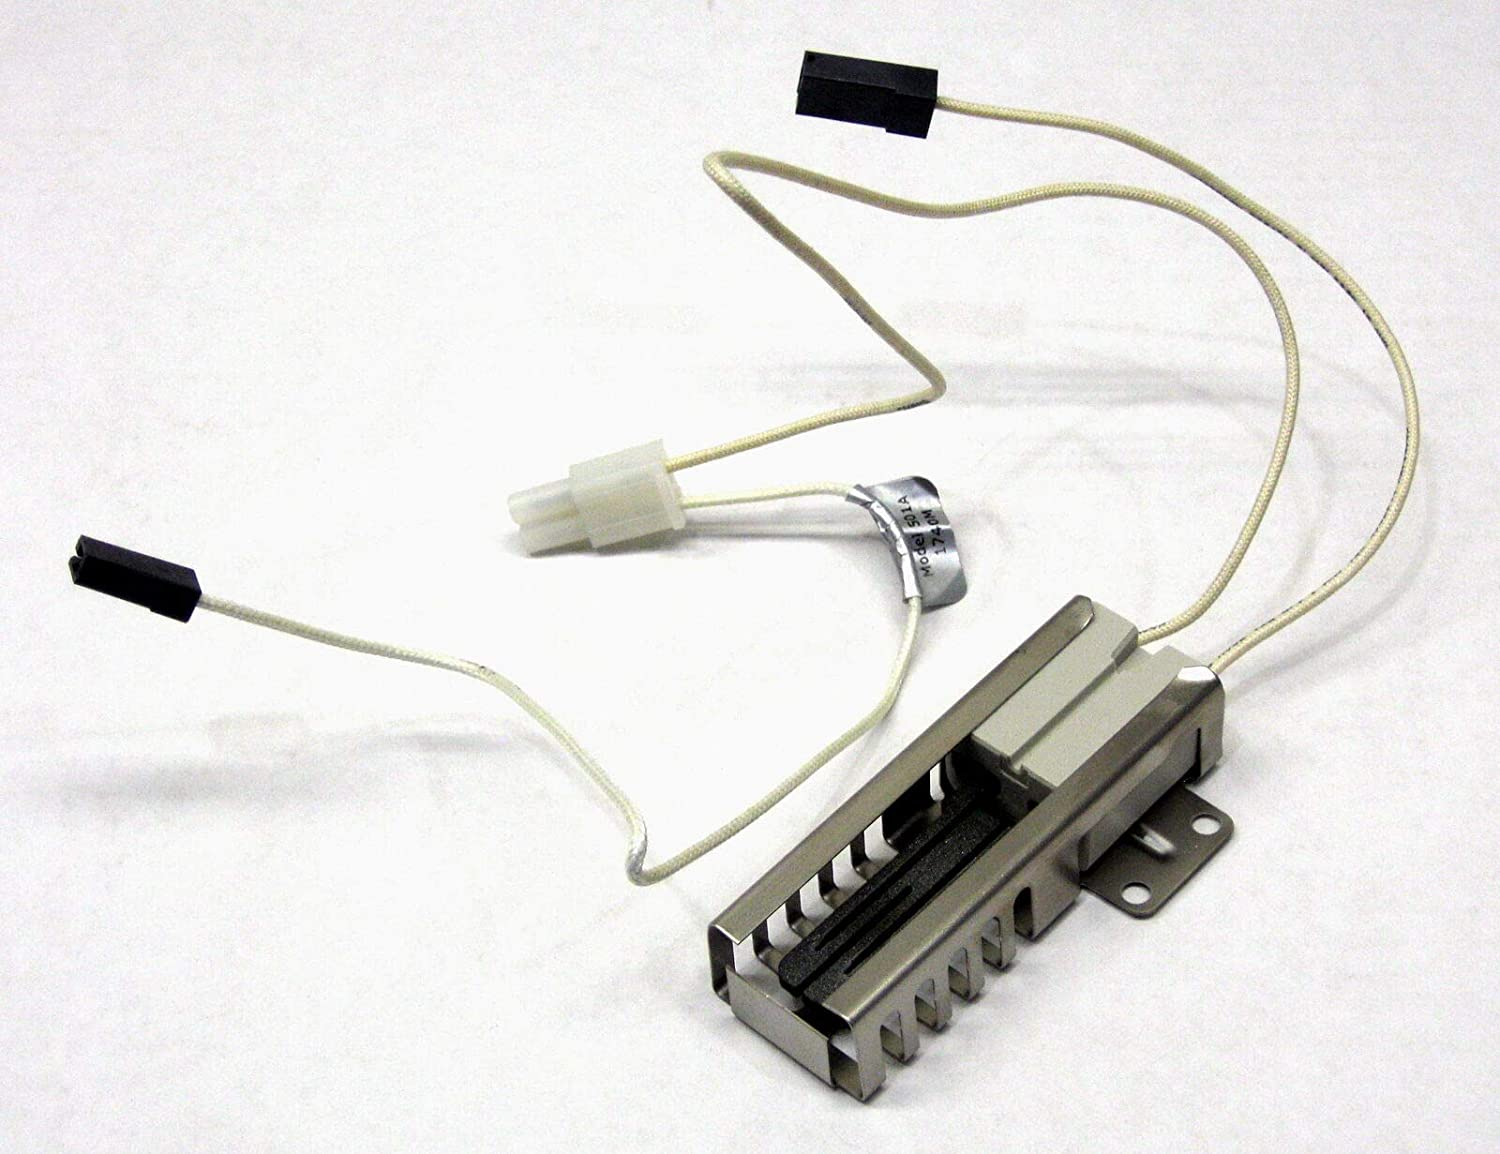 5304509706 316489408Gas Oven Range Igniter for Electrolux Frigidaire Ignitor